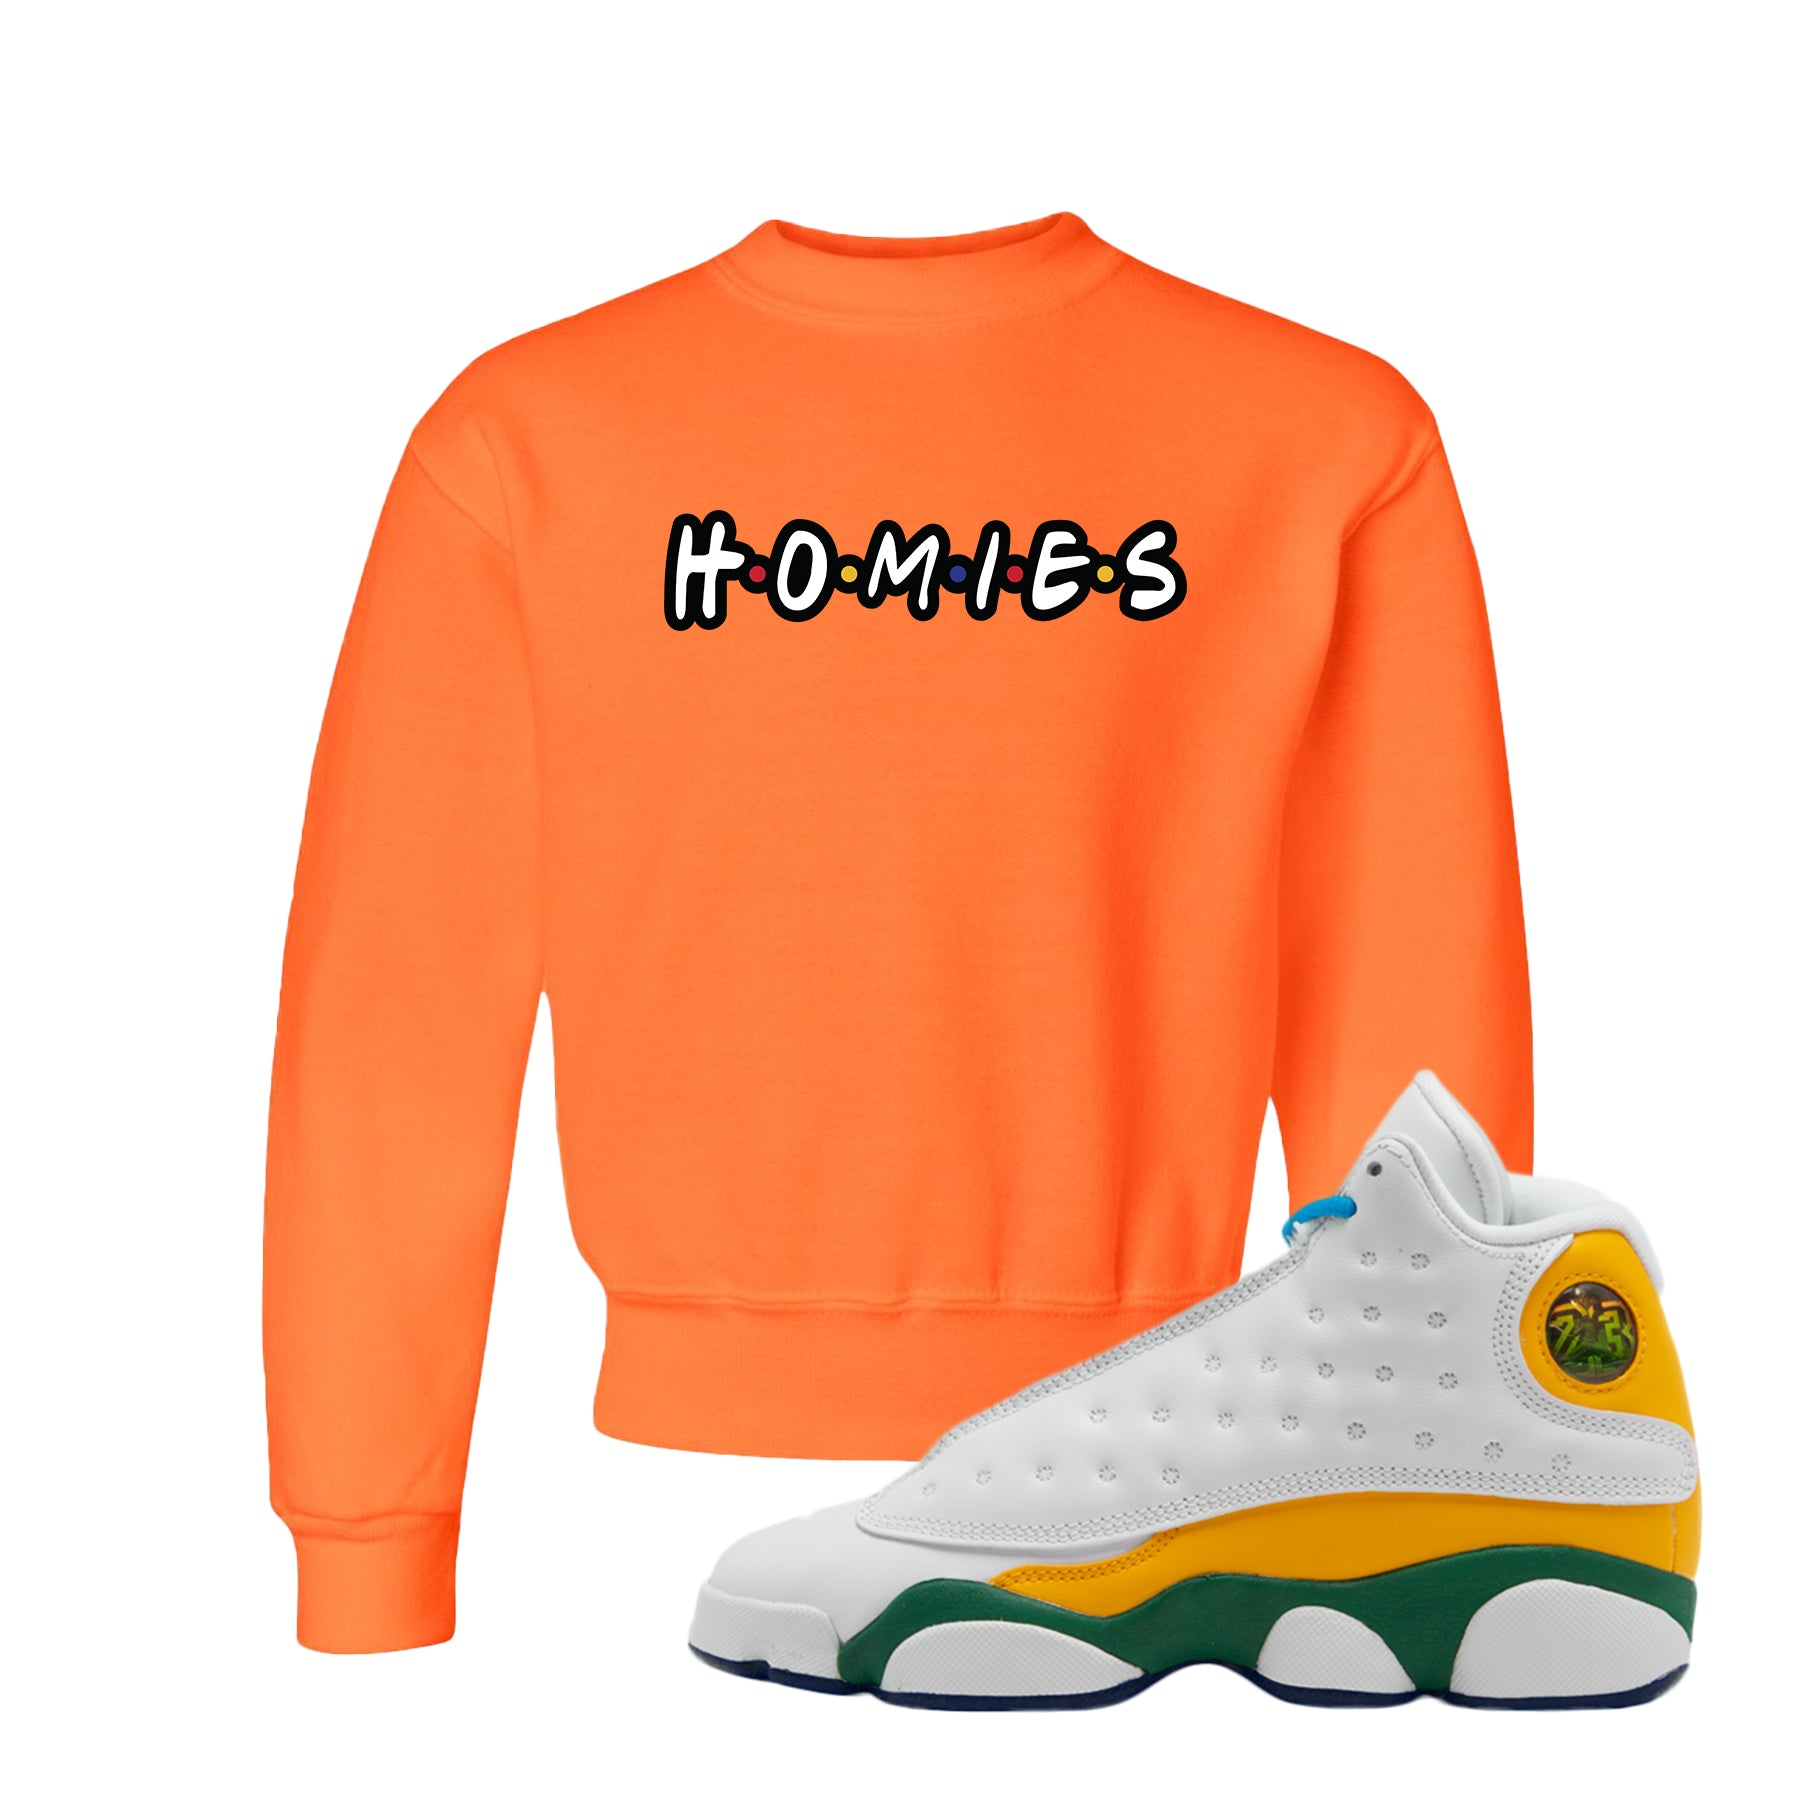 Homies Safety Orange Kid S Crewneck Sweatshirt To Match Air Jordan